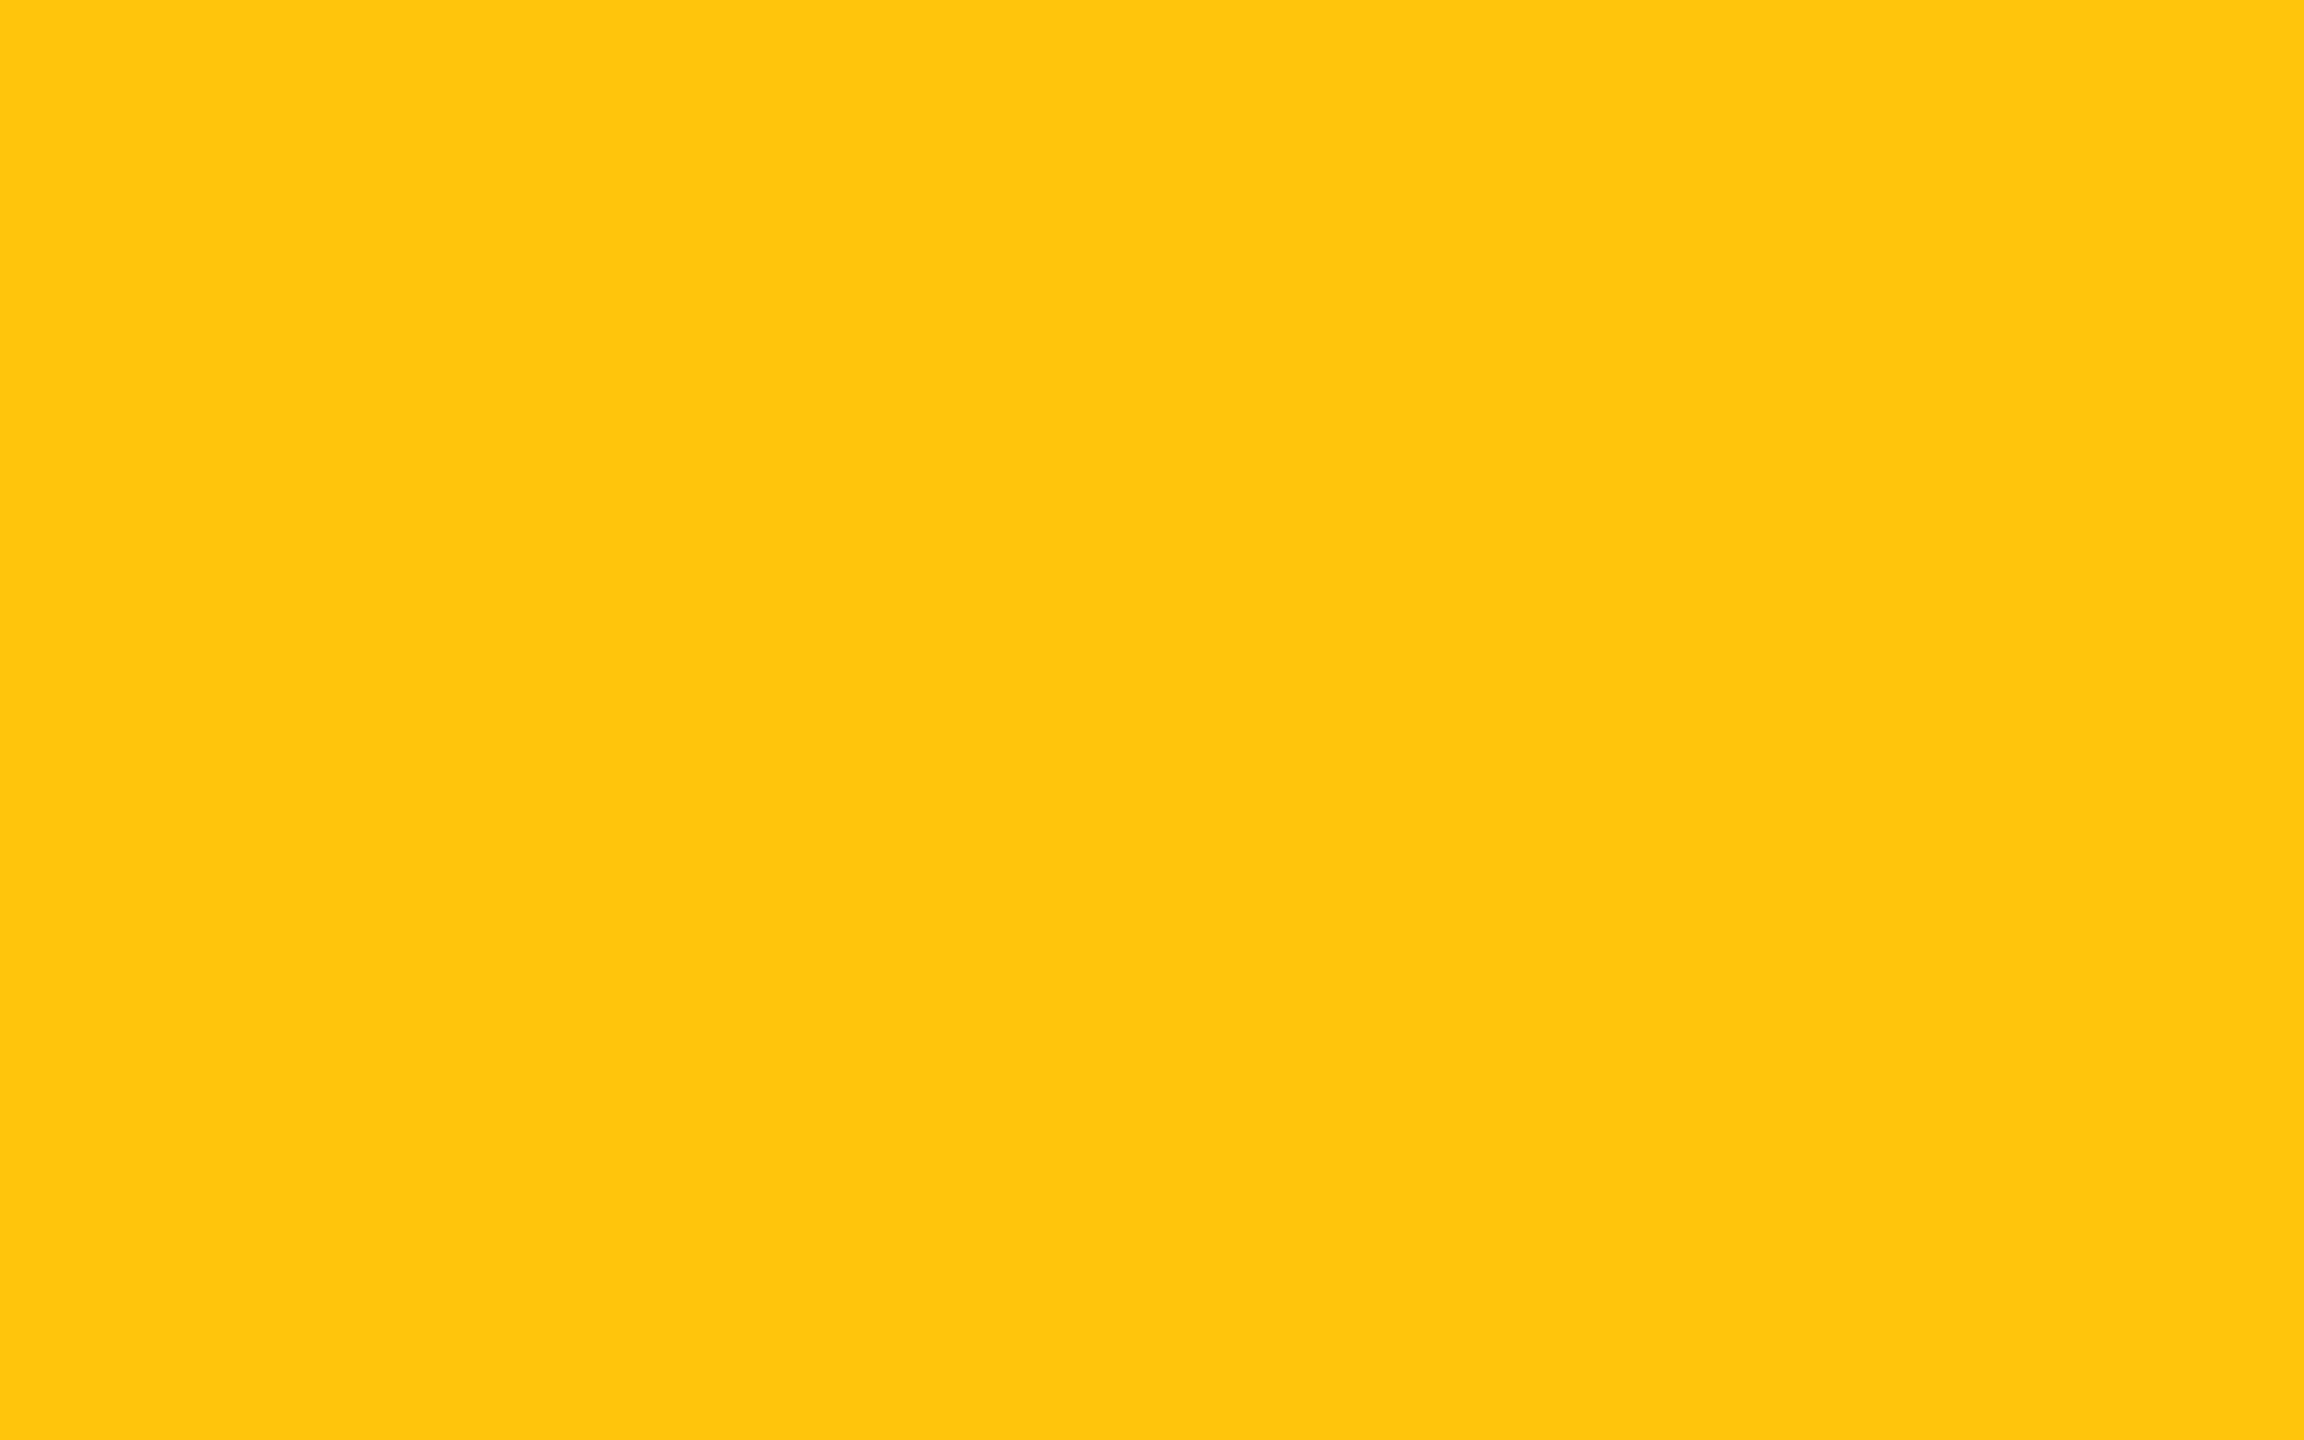 2304x1440 Mikado Yellow Solid Color Background